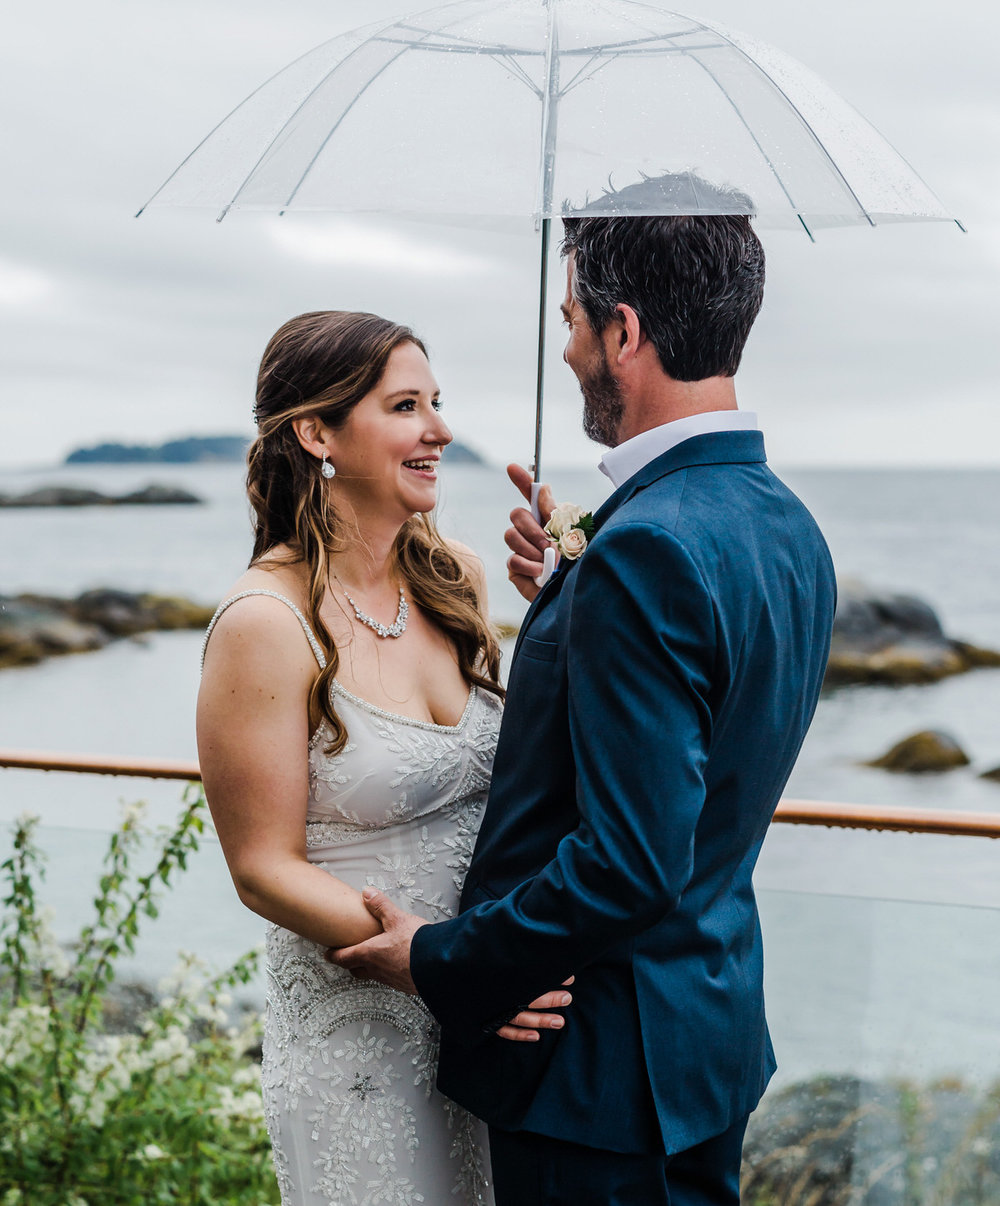 Sunshine Coast BC Elopement - Jennifer Picard Photography - IMG_5869.jpg